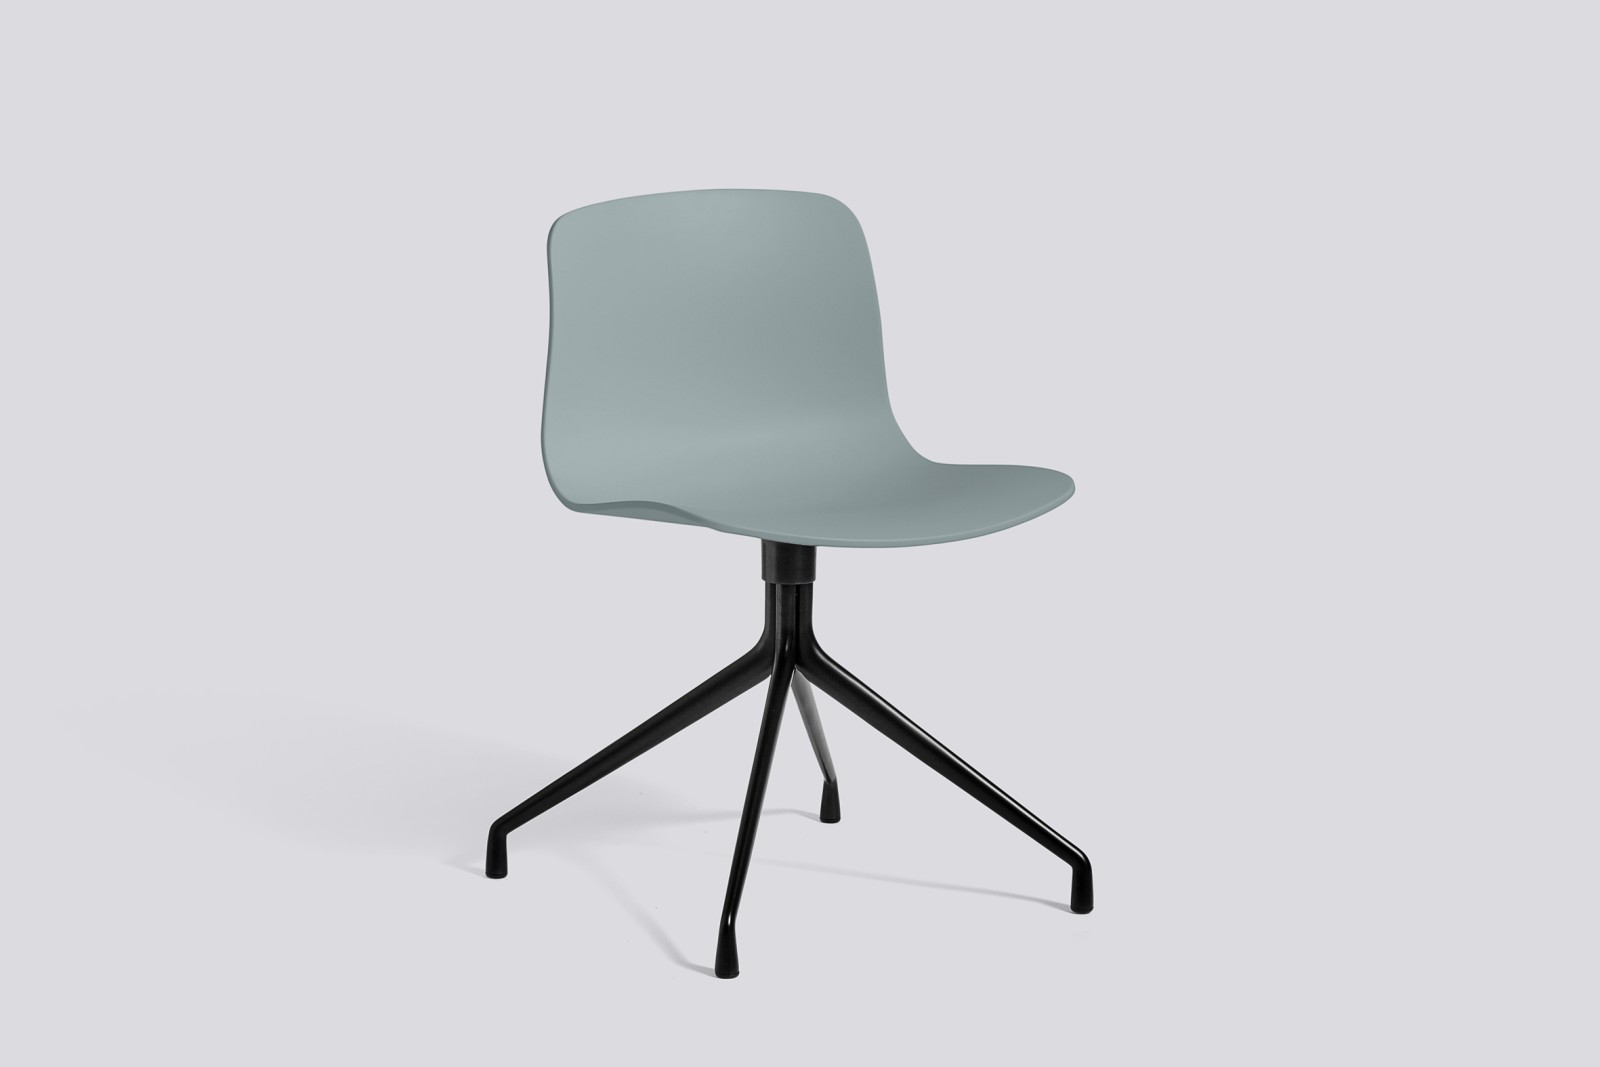 About A Chair AAC10 Dusty blue, Black Powder Coated Aluminium